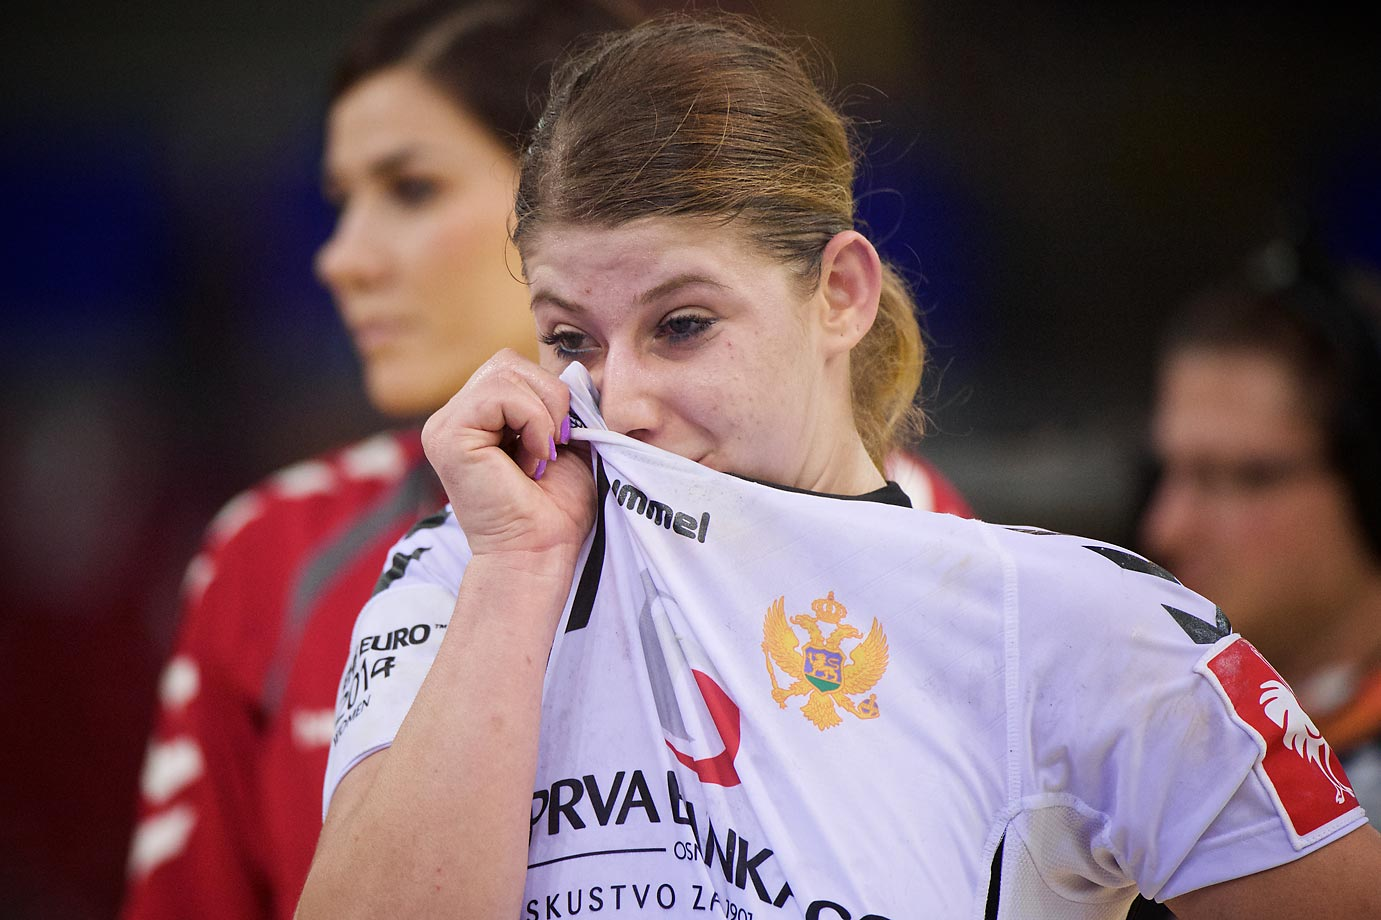 Montenegro's Majda Mehmedovic wipes her tears after her team lost a semi-final game to Spain.